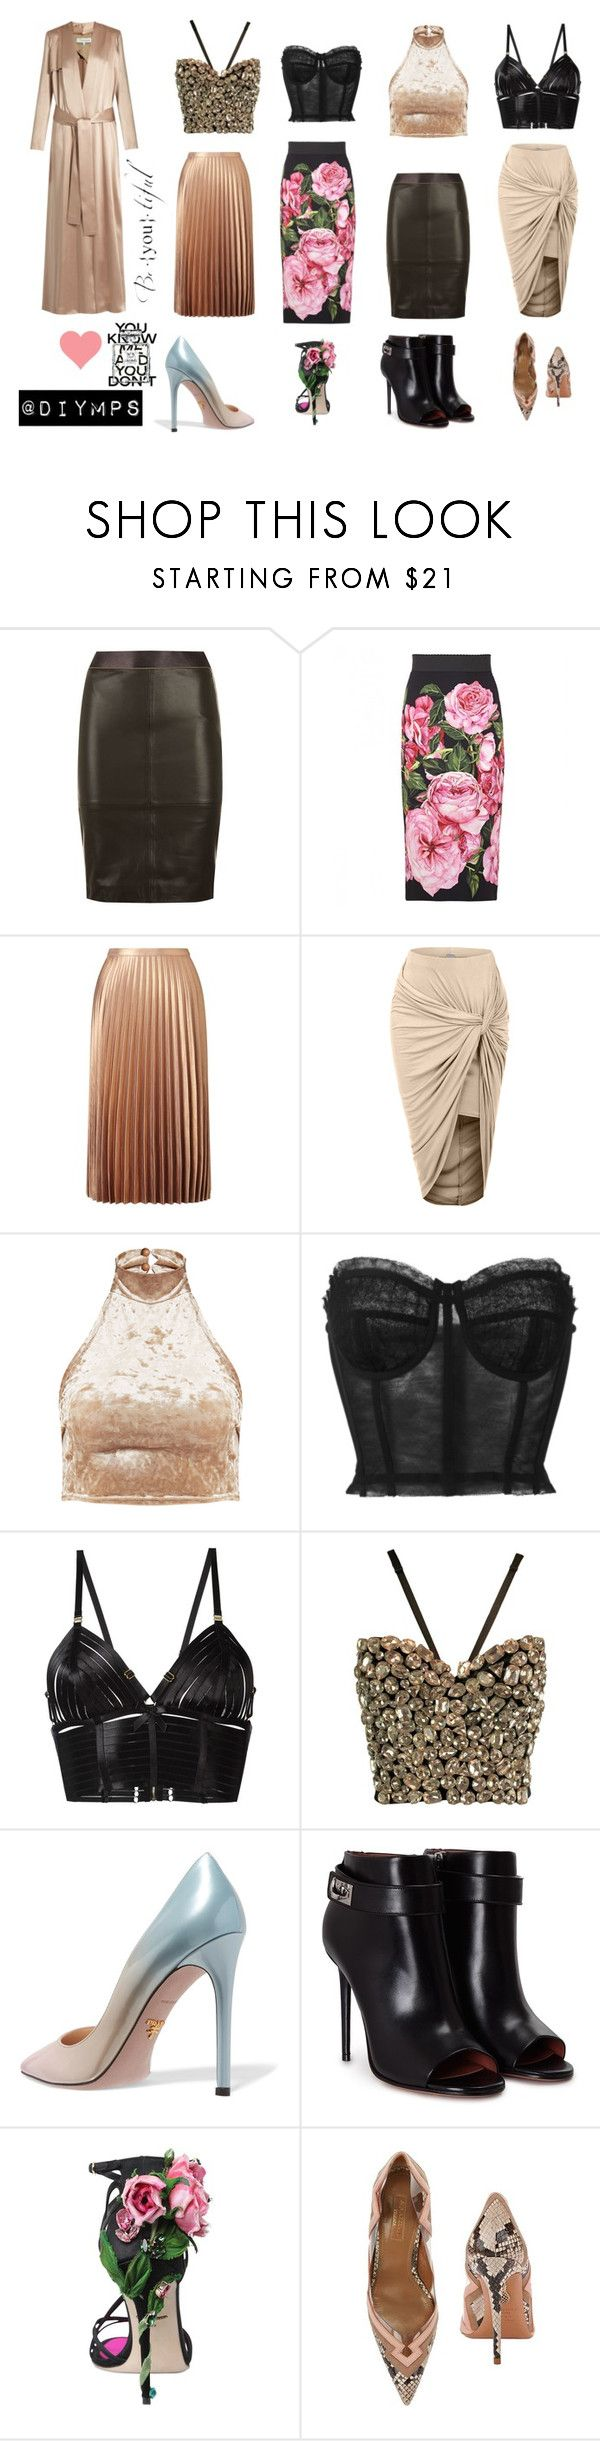 """Today's outfits"" by diymps on Polyvore featuring Reiss, Dolce&Gabbana, Miss Selfridge, LE3NO, Bordelle, Prada, Givenchy, Aquazzura, Galvan and Chanel"